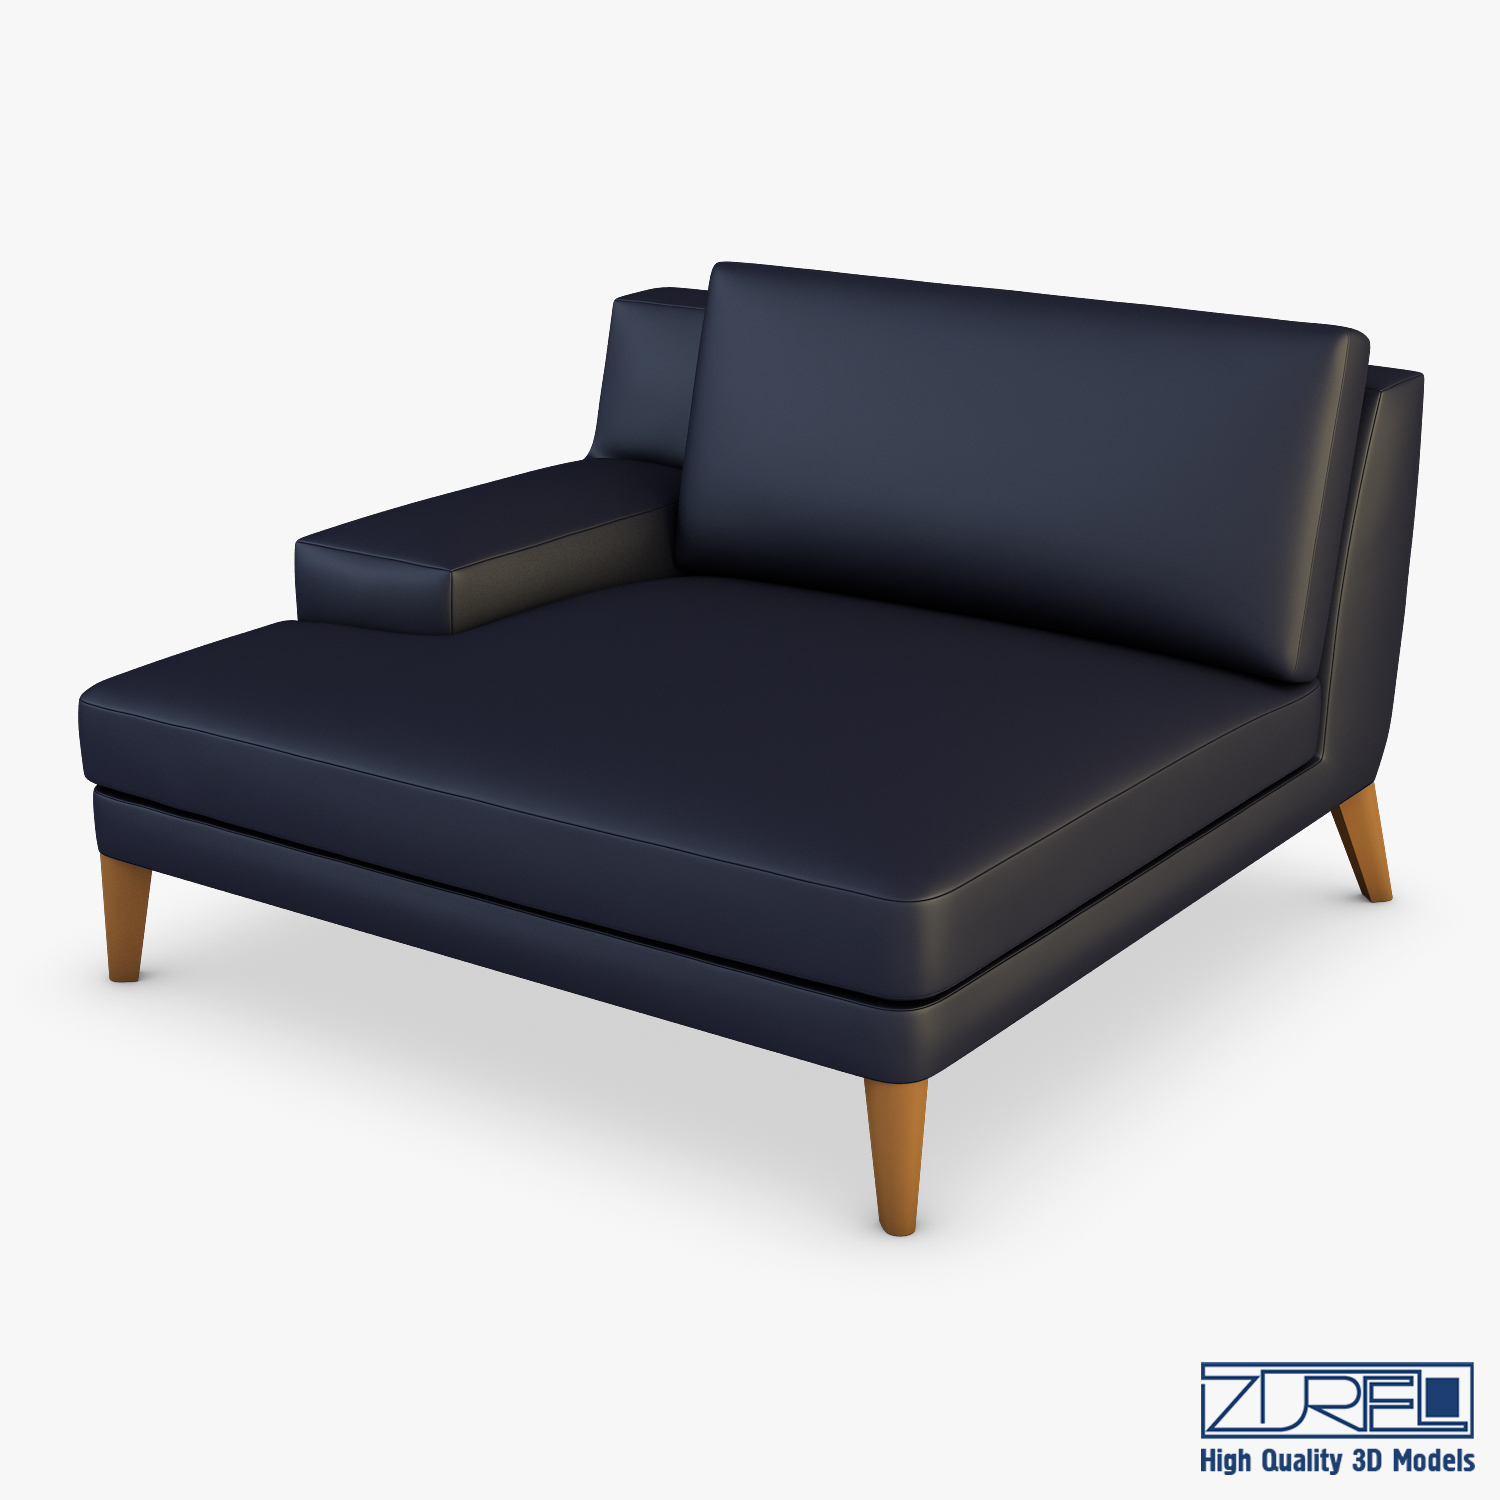 Prime Roche Bobois Playlist Large 3 Seat Chaise Bralicious Painted Fabric Chair Ideas Braliciousco